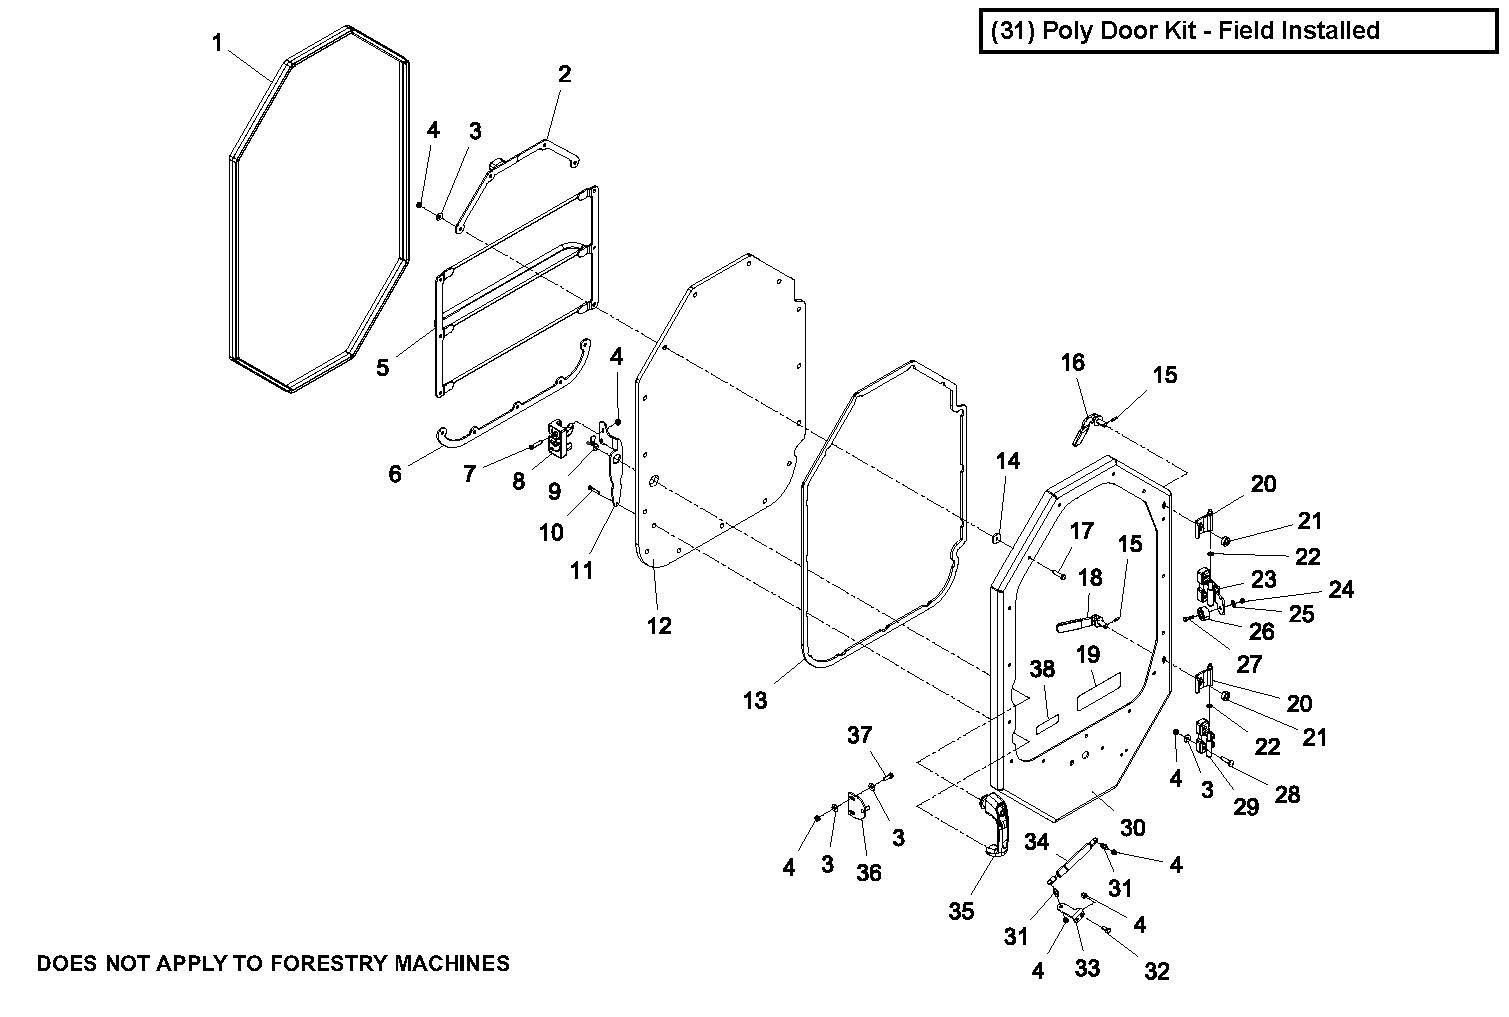 Diagram 11-2A Poly Door - For Non-Forestry Machines